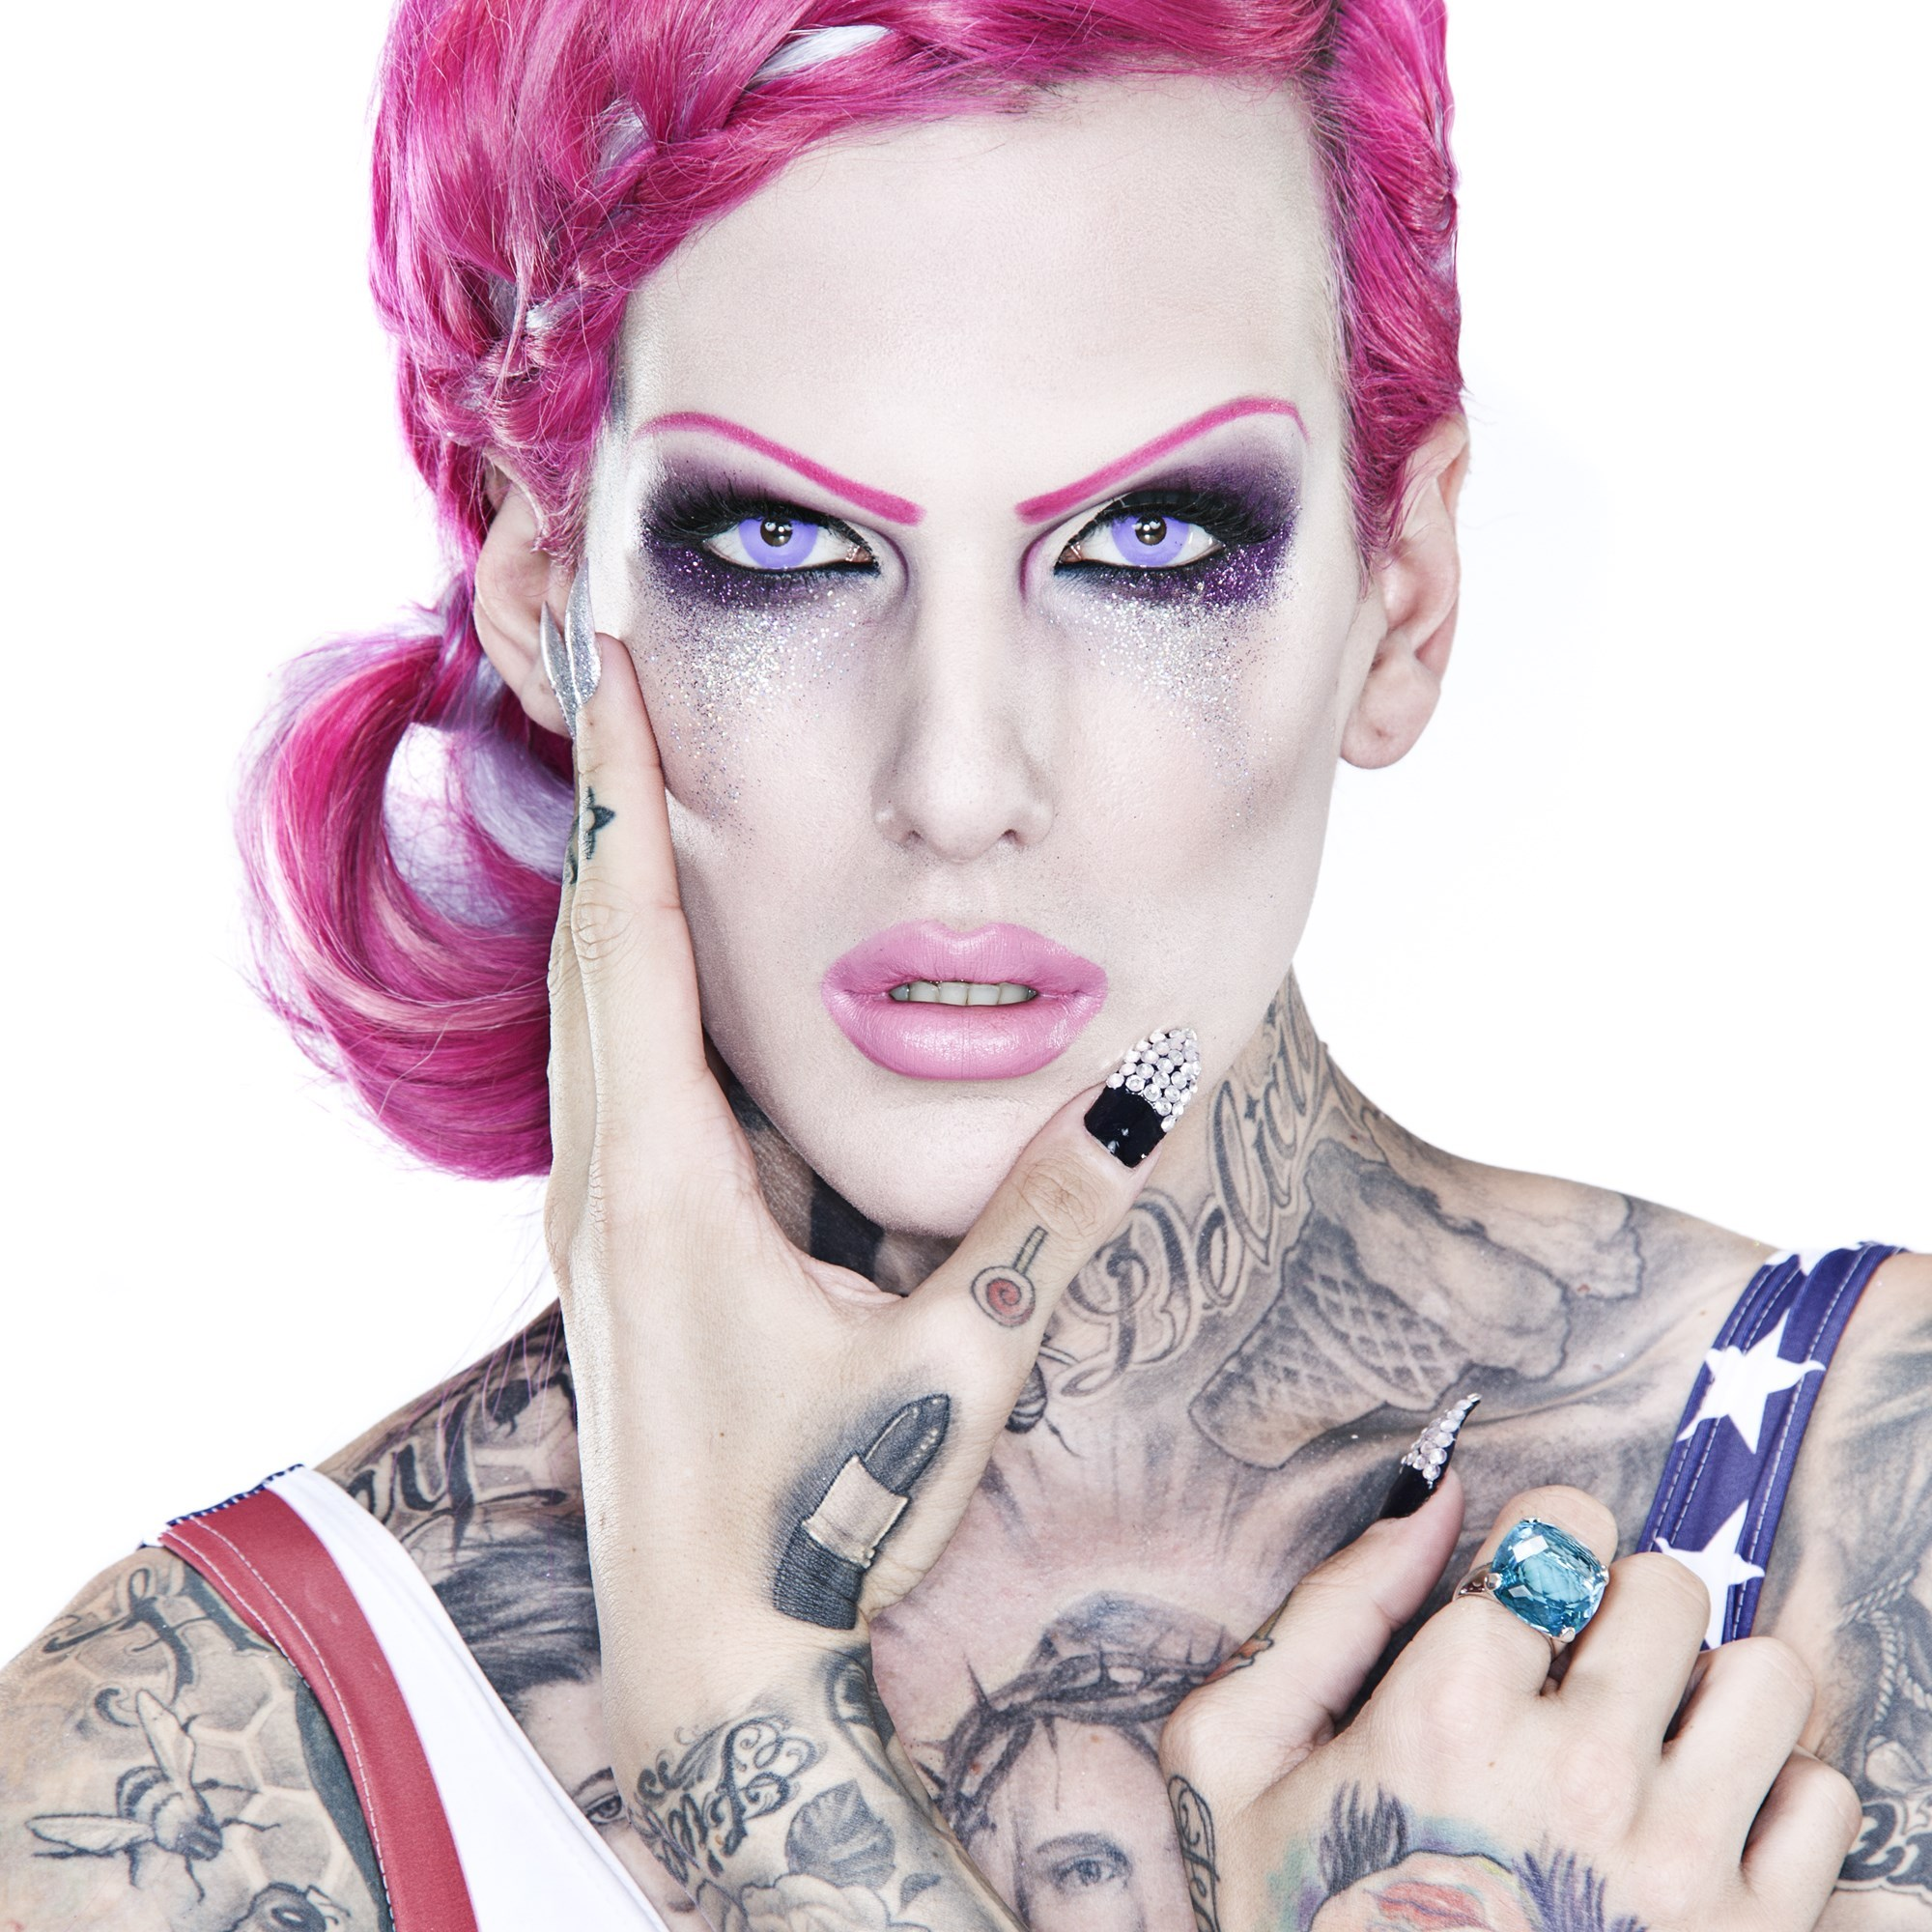 Jeffree Star | Known people - famous people news and ... Justin Timberlake Tour 2015